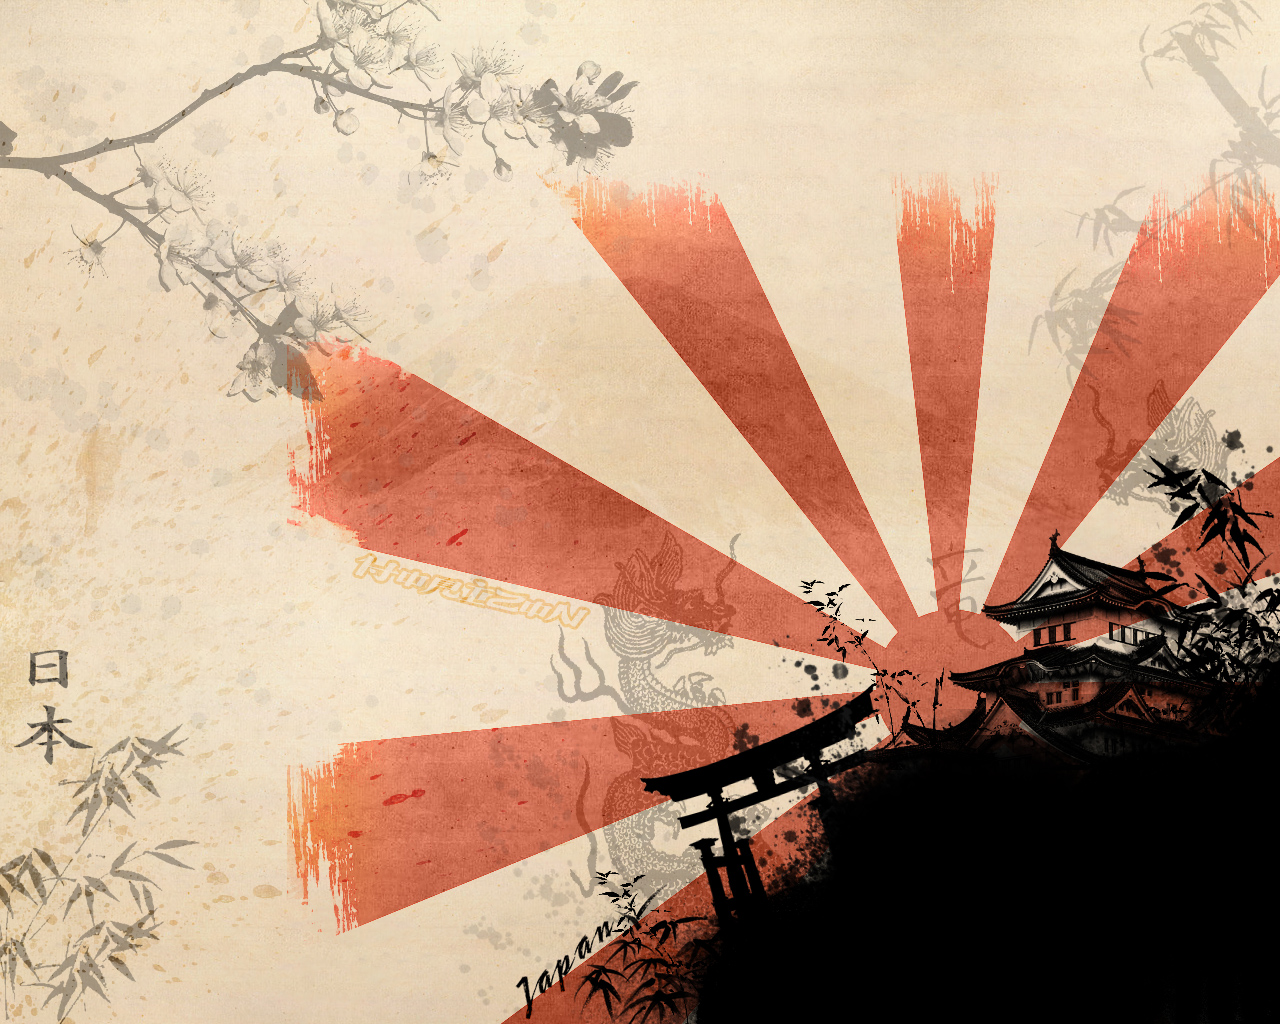 Japan_Wallpaper_by_HorizoNpl